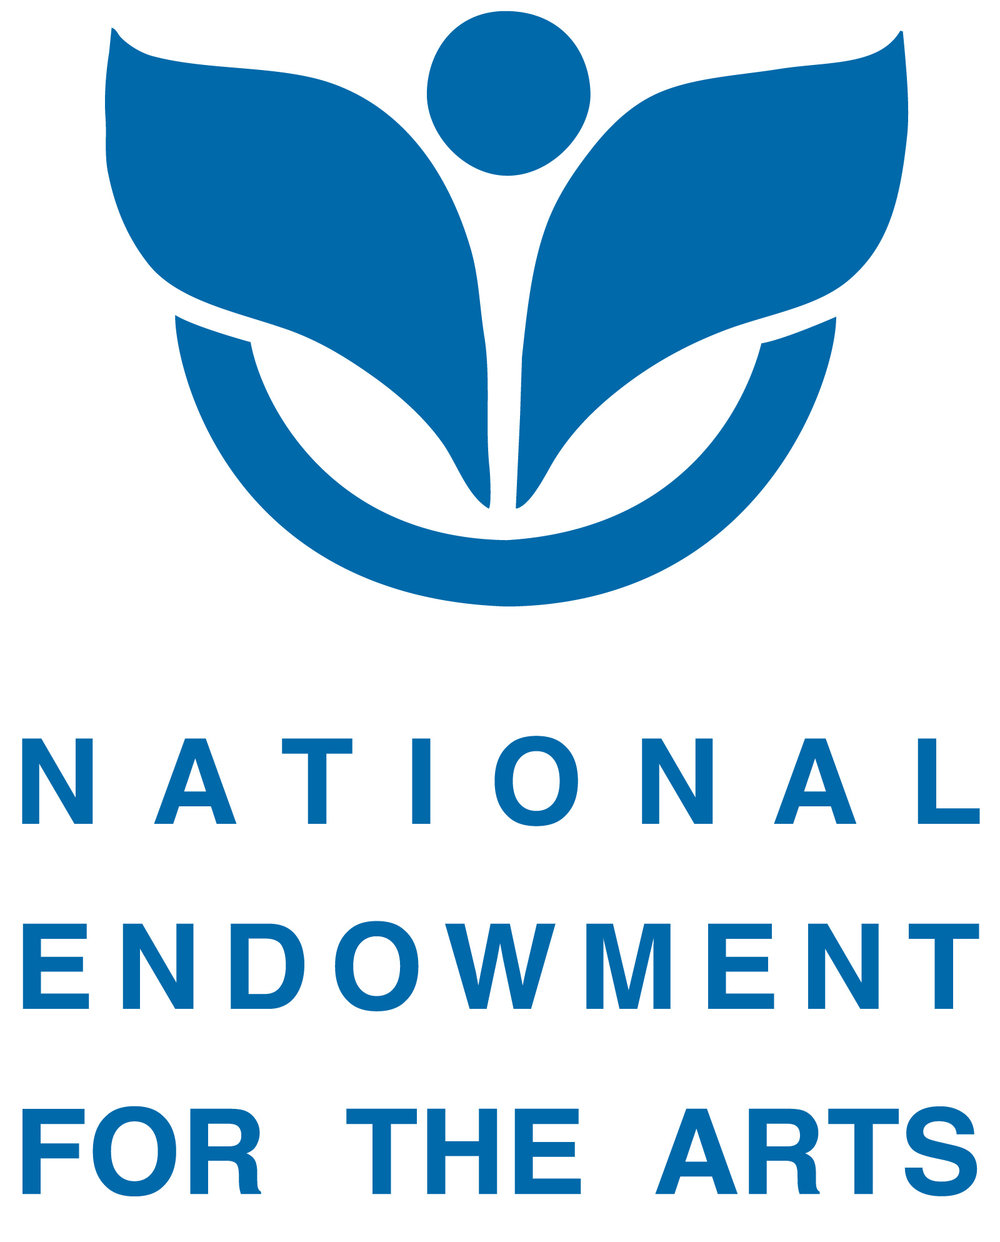 NATIONAL ENDOWMENT FOR THE ARTS-LARGE.jpg